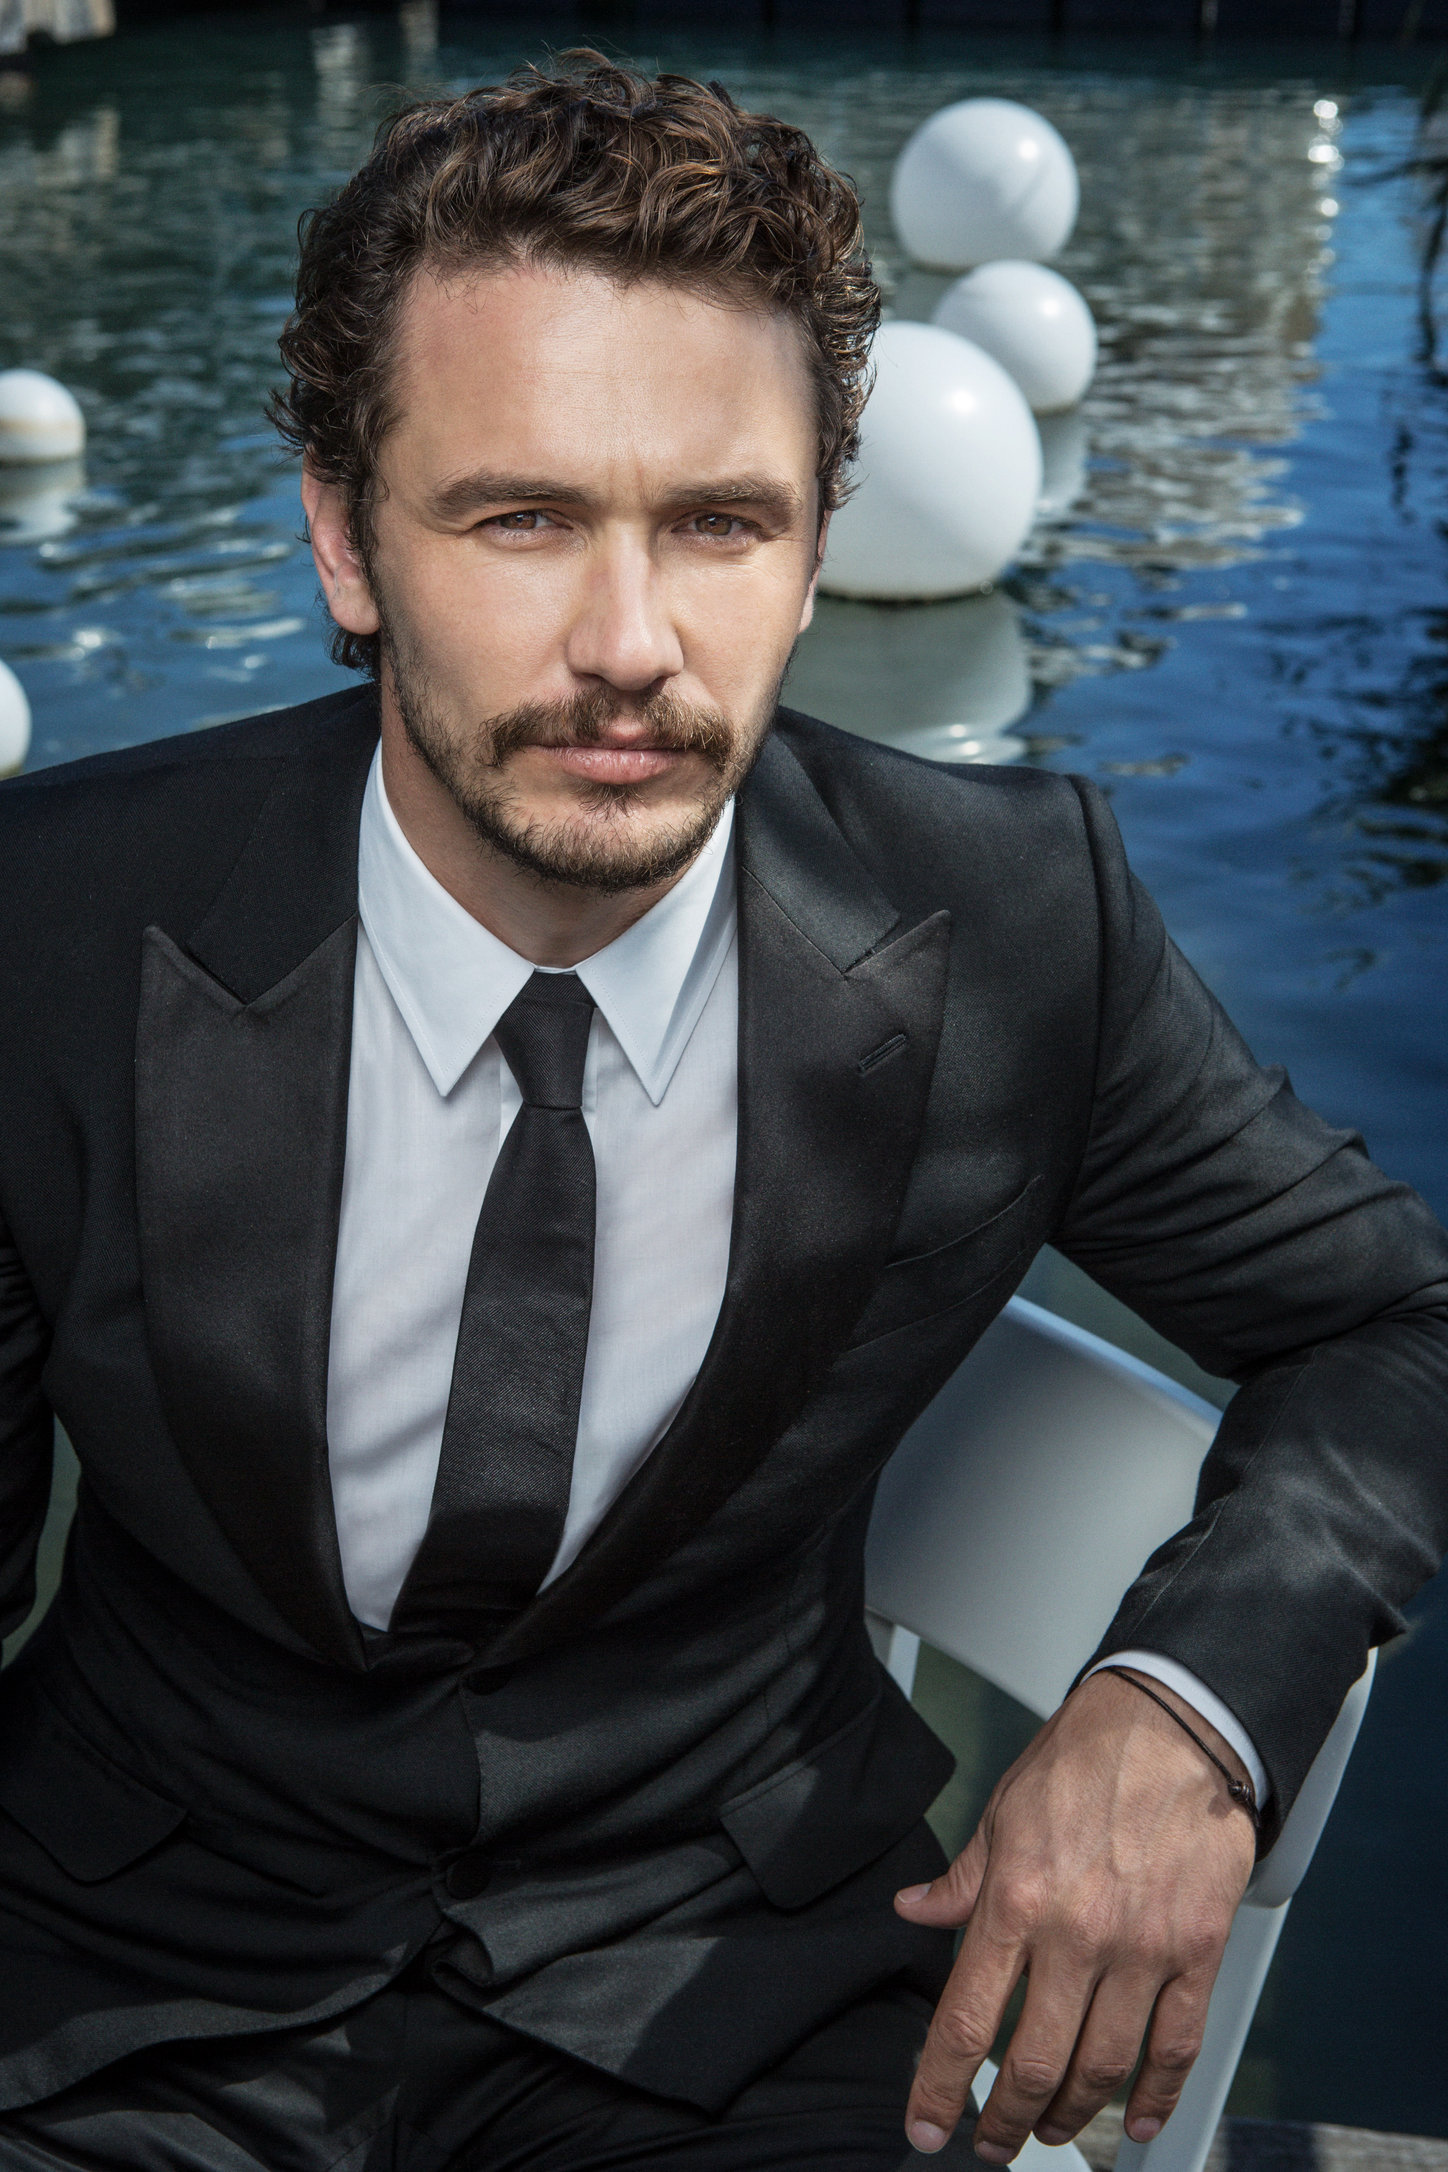 james franco, director-actor